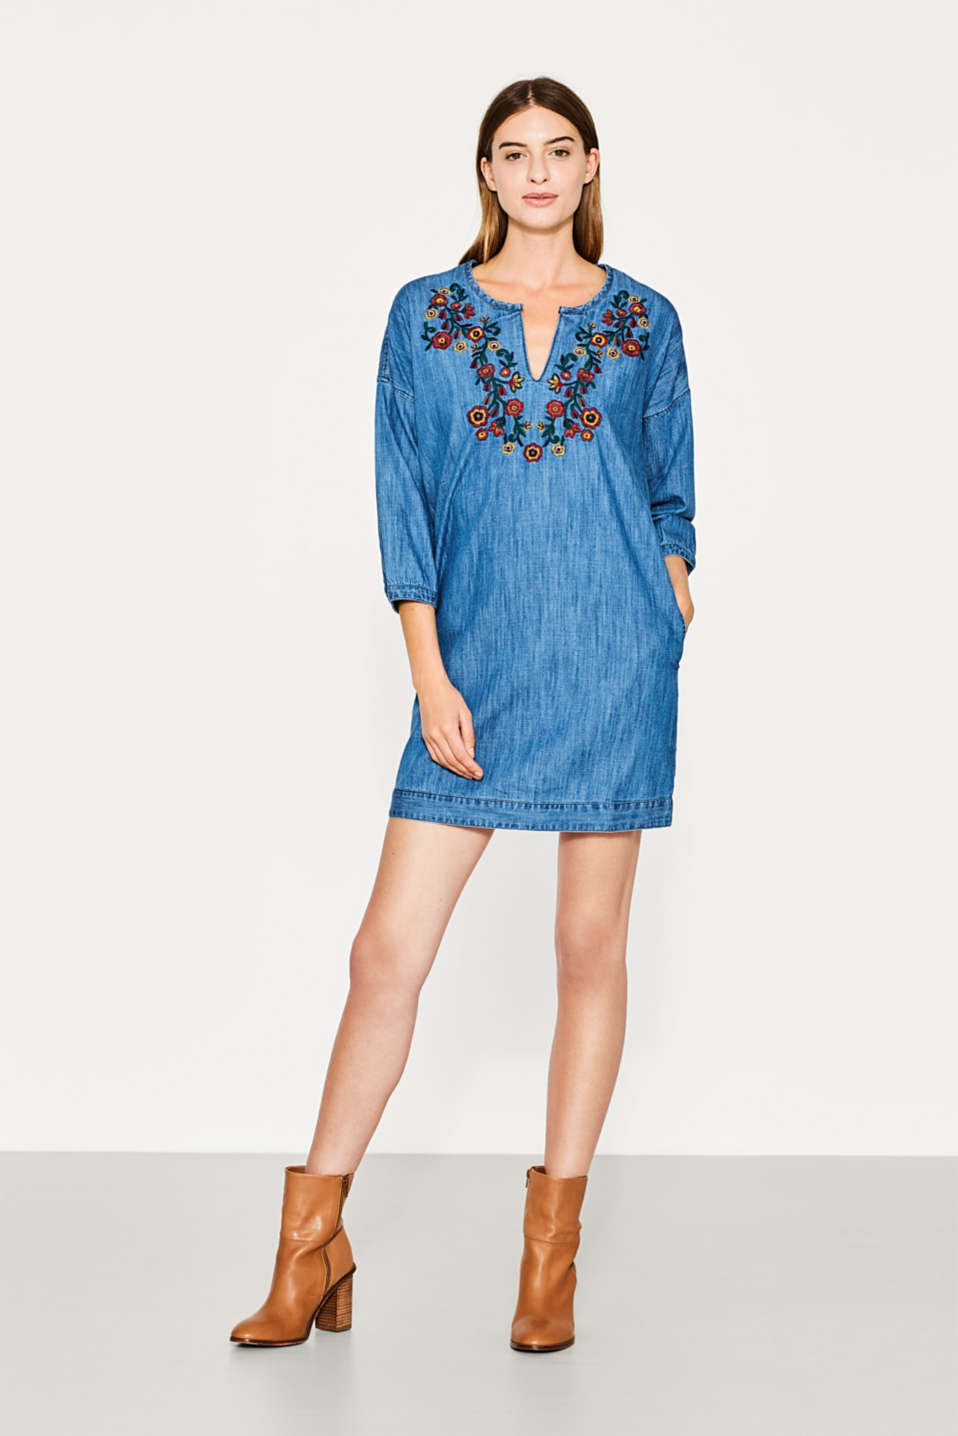 Embroidered tunic dress, cotton denim